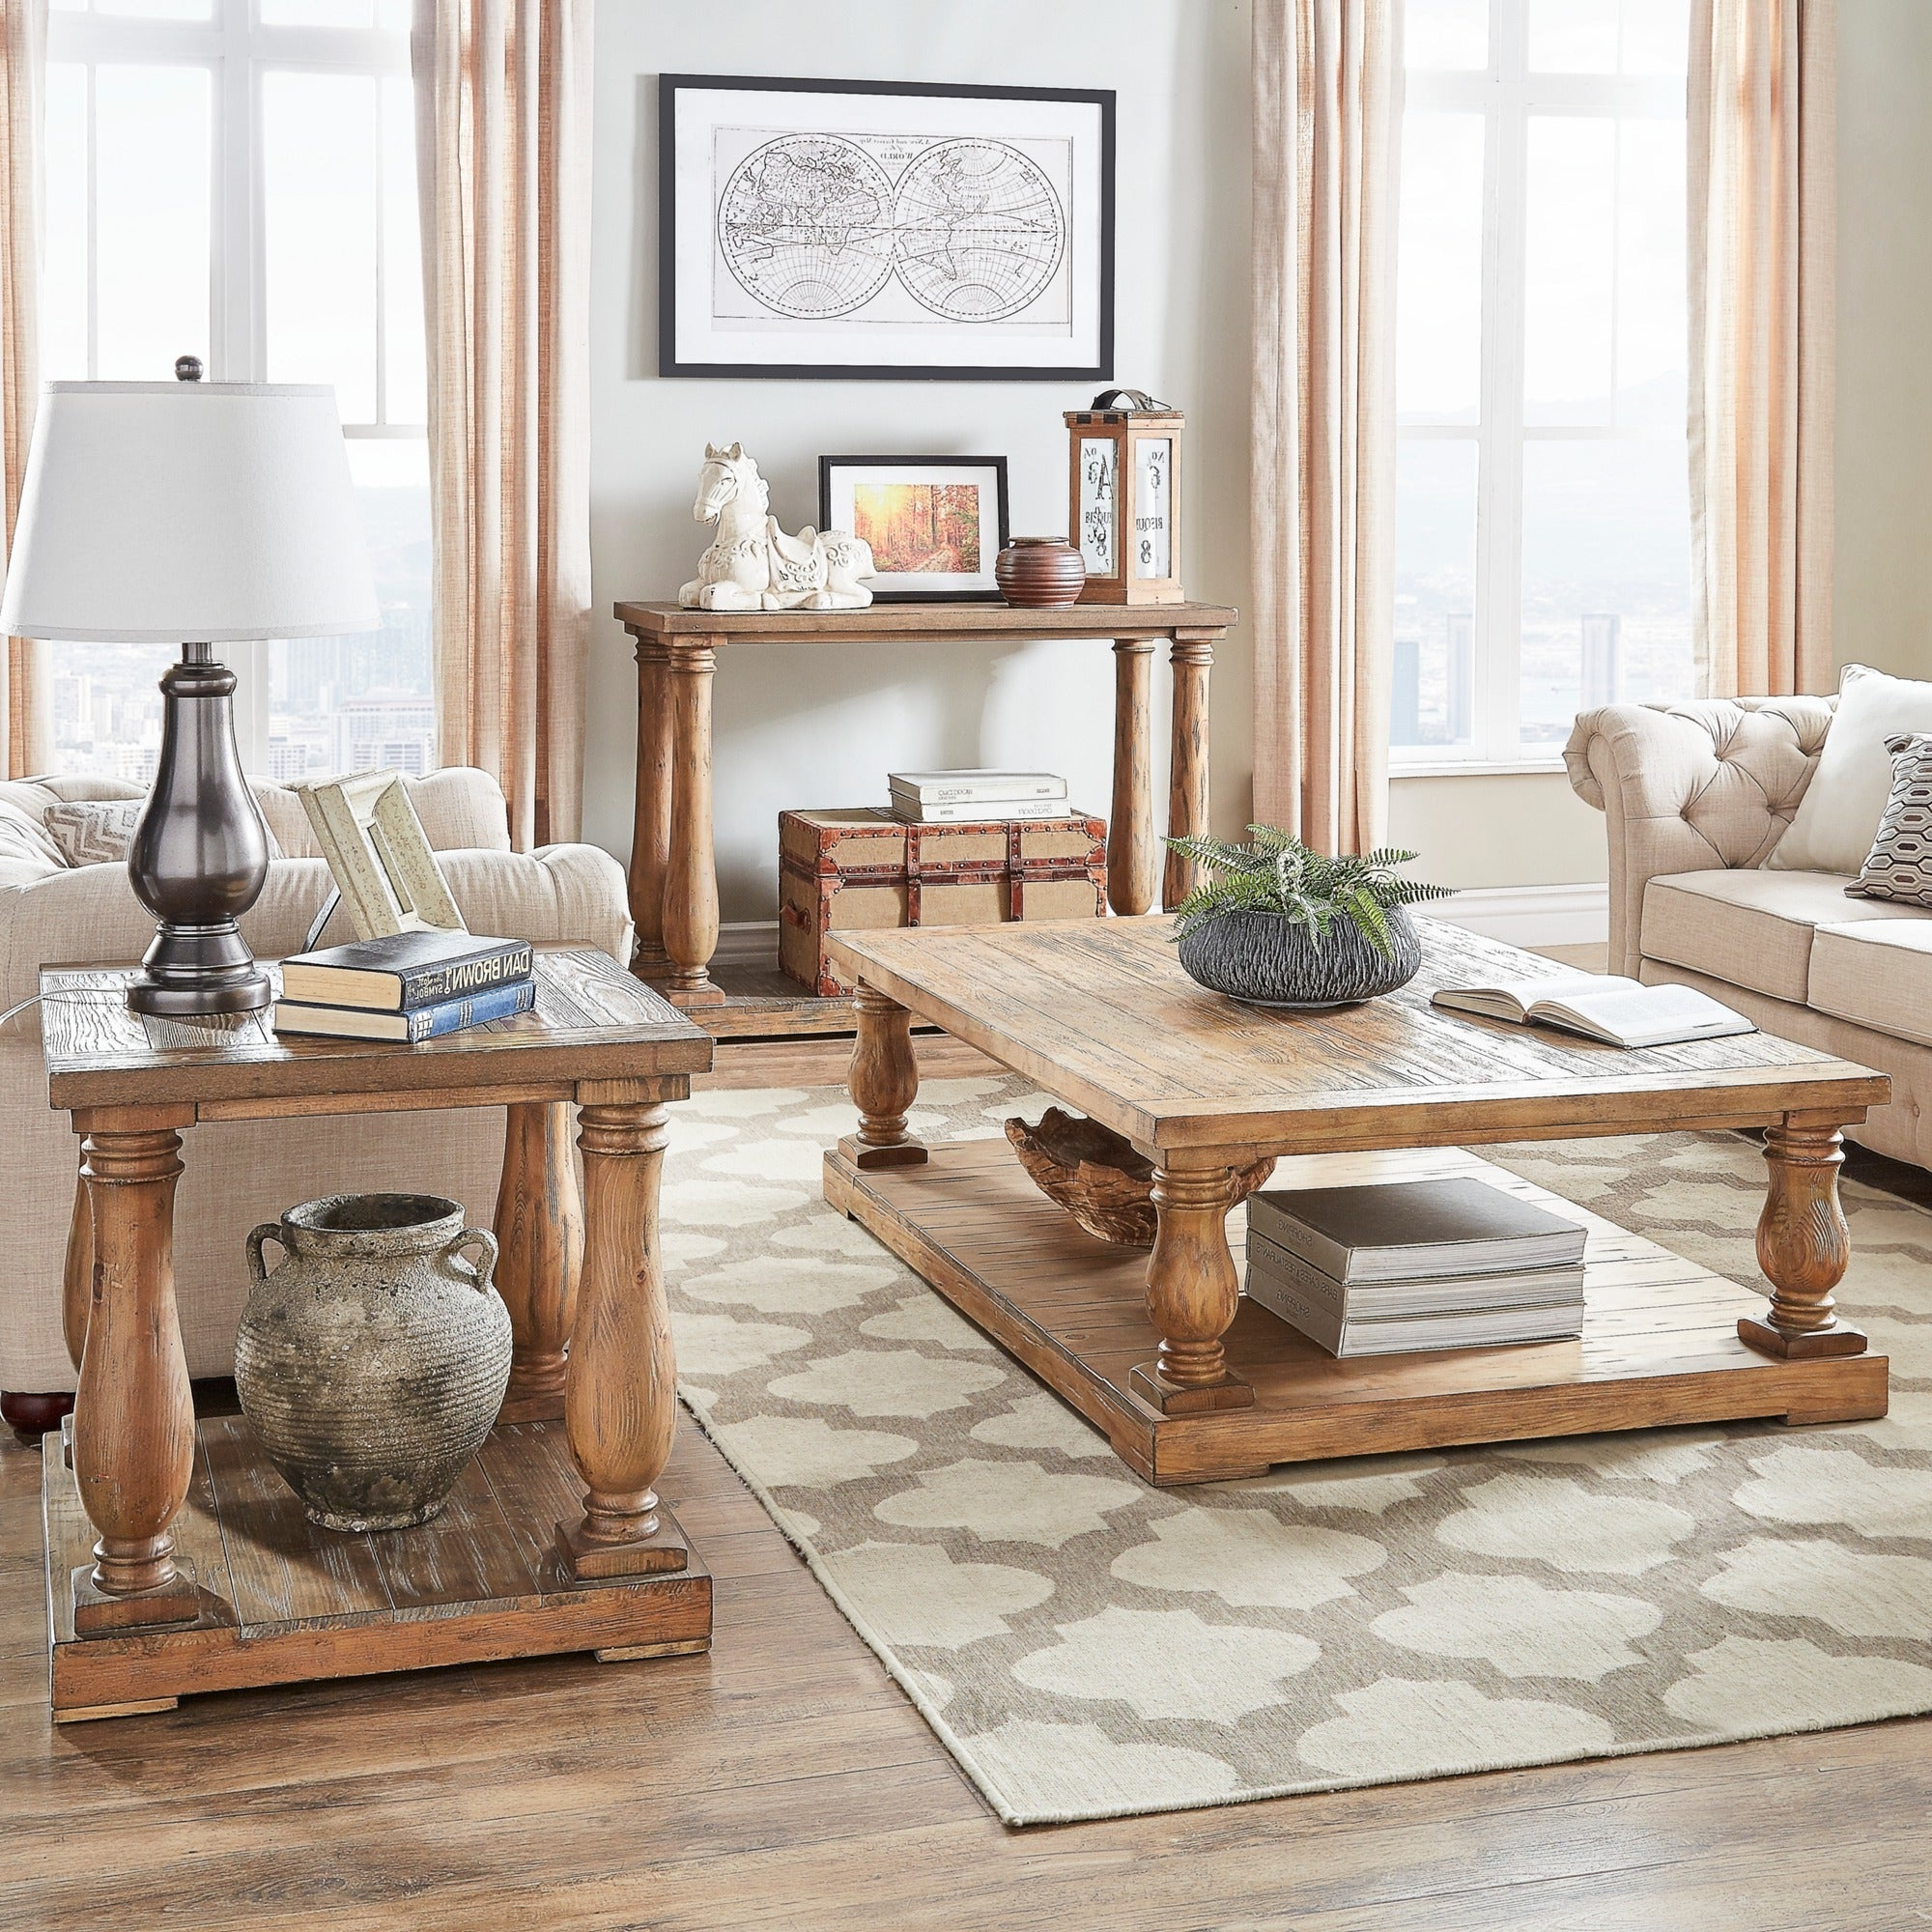 Edmaire Rustic Pine Baluster 3 Piece Table Setinspire Q Artisan In 2020 Edmaire Rustic Pine Baluster Coffee Tables (View 4 of 20)